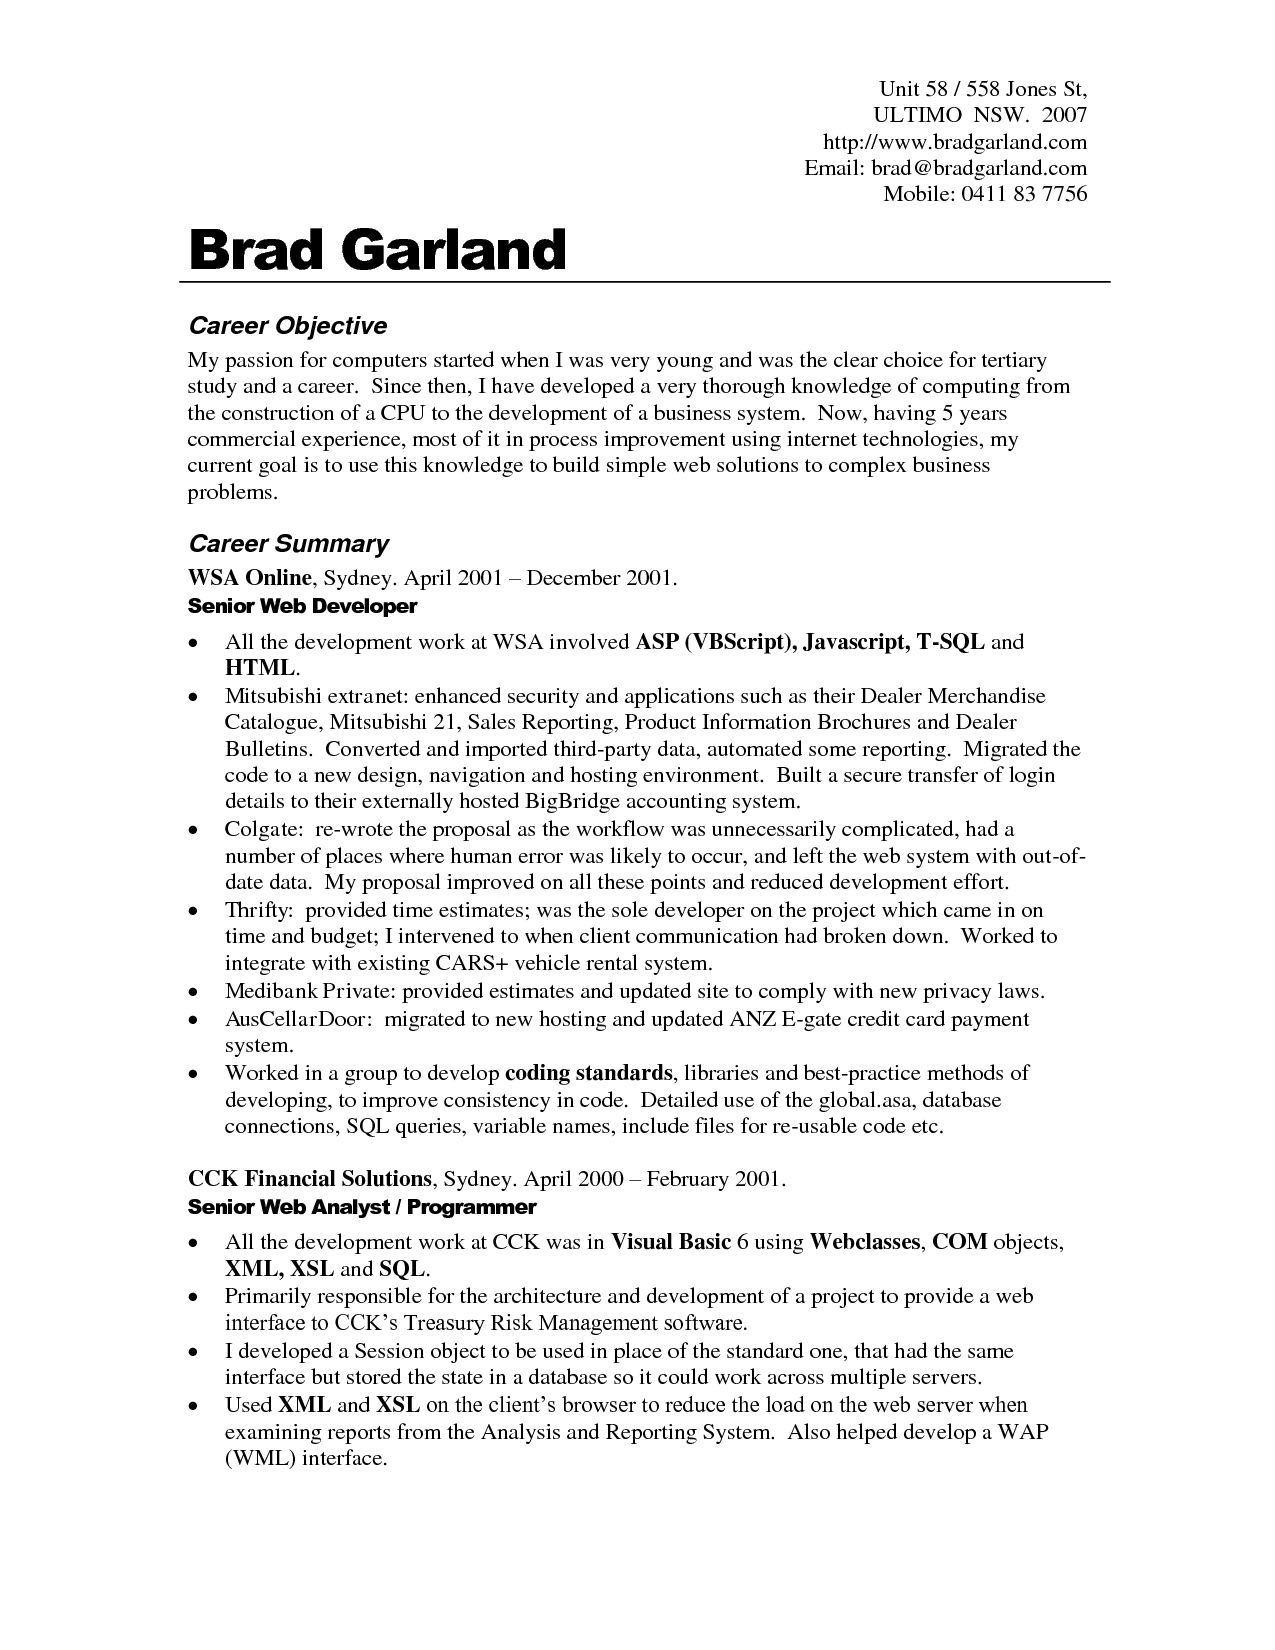 Sample Resume Action Verbs For Lawyers Formatting Back Post